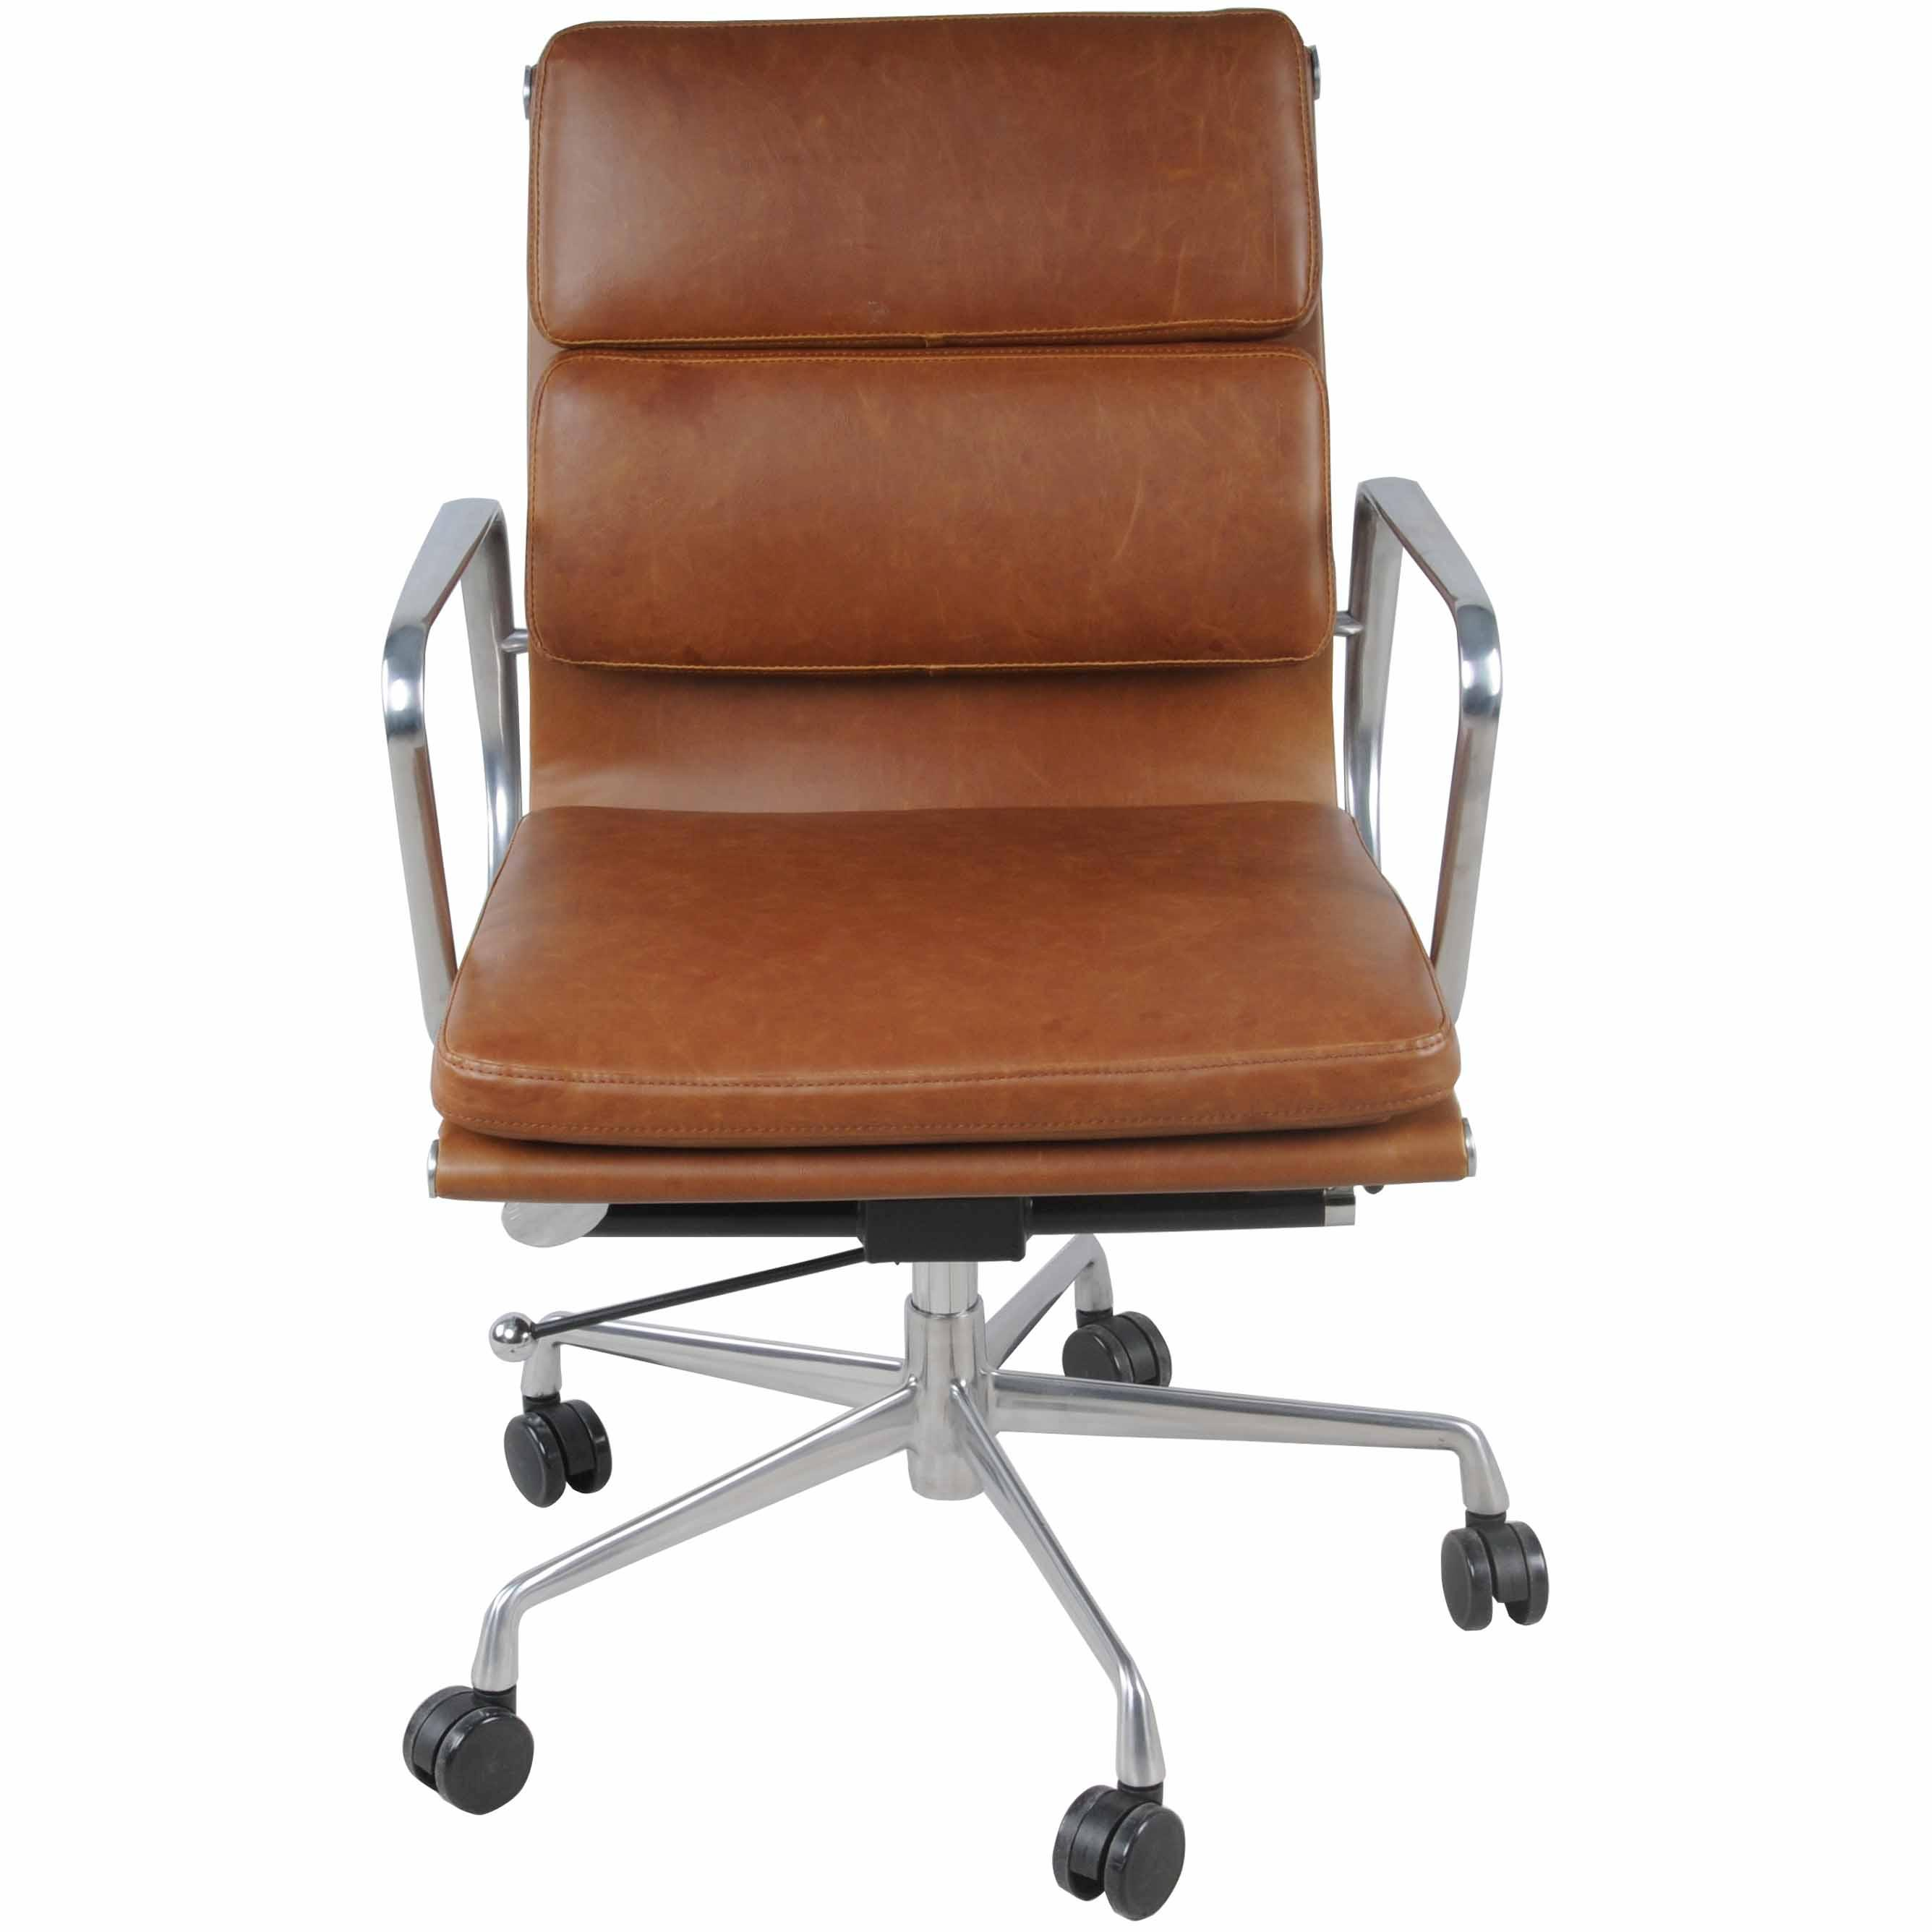 Chandel PU Low Back Office Chair Vintage Tawny/6900002-VT  sc 1 st  New Pacific Direct & 6900002-VT - NPD Furniture | Stylish u0026 Affordable Lifestyle ...